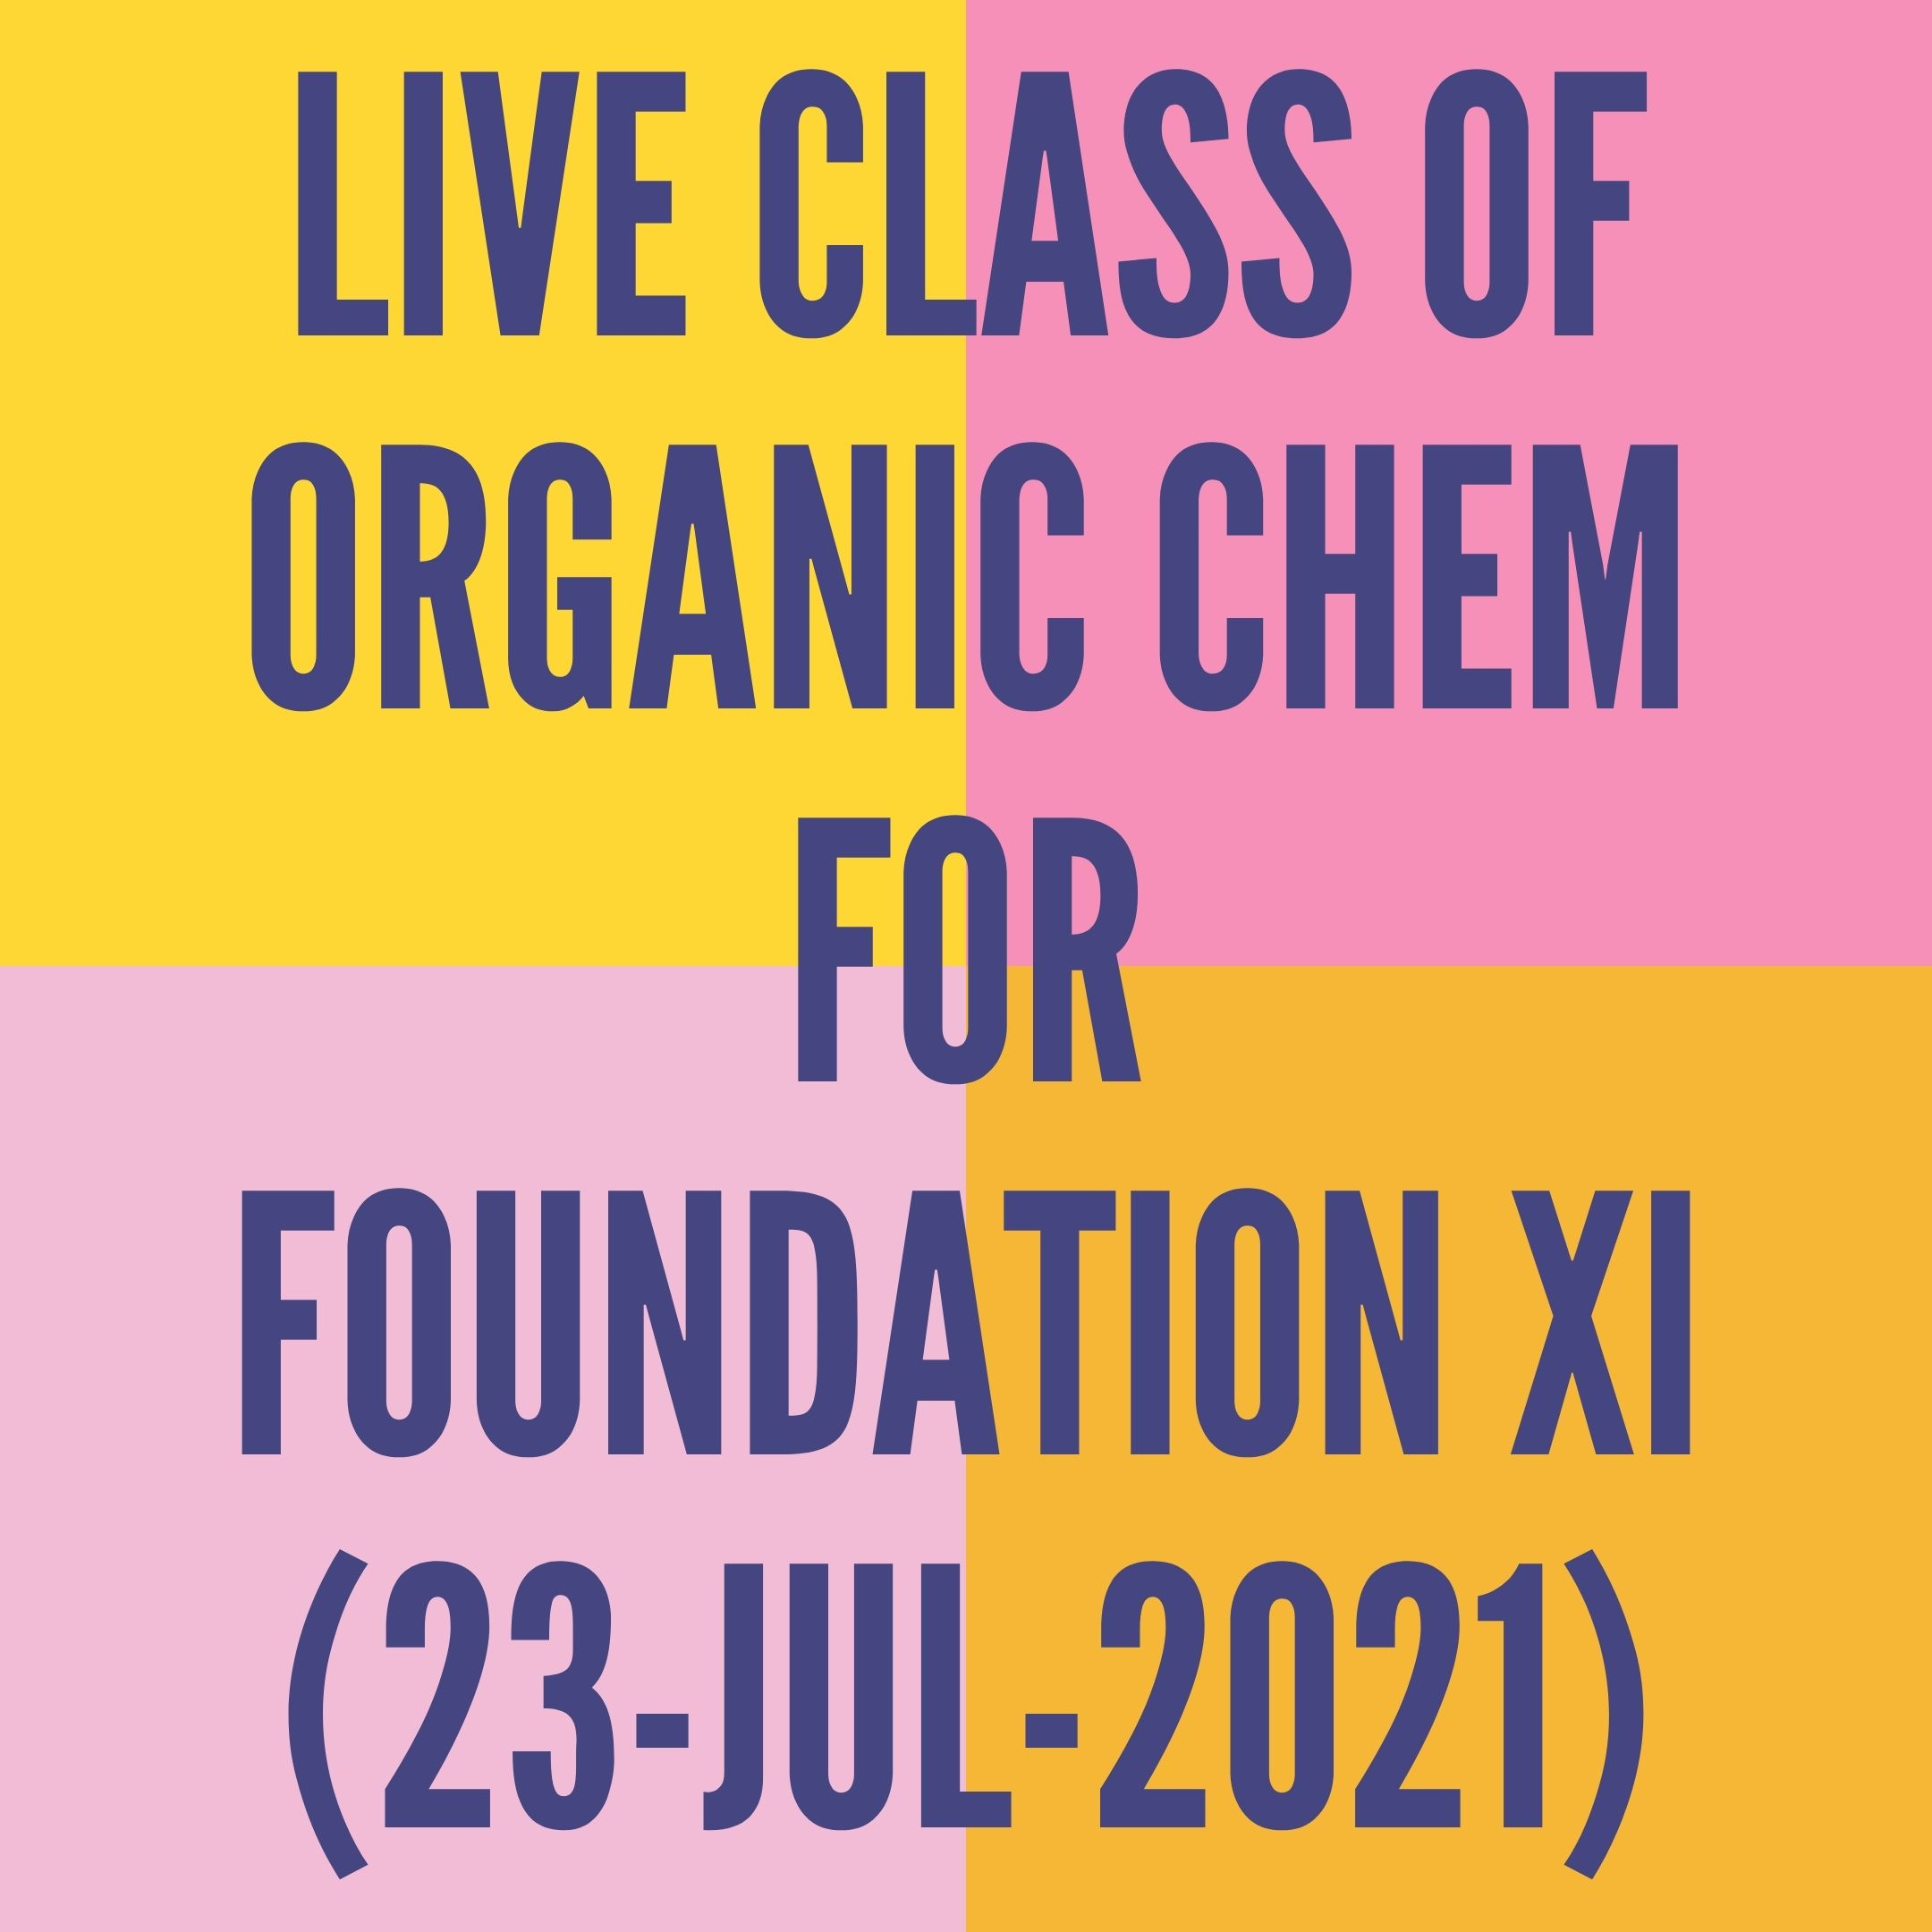 LIVE CLASS OF ORGANIC CHEMISTRY FOR FOUNDATION XI (23-JUL-2021) NOMENCLATURE